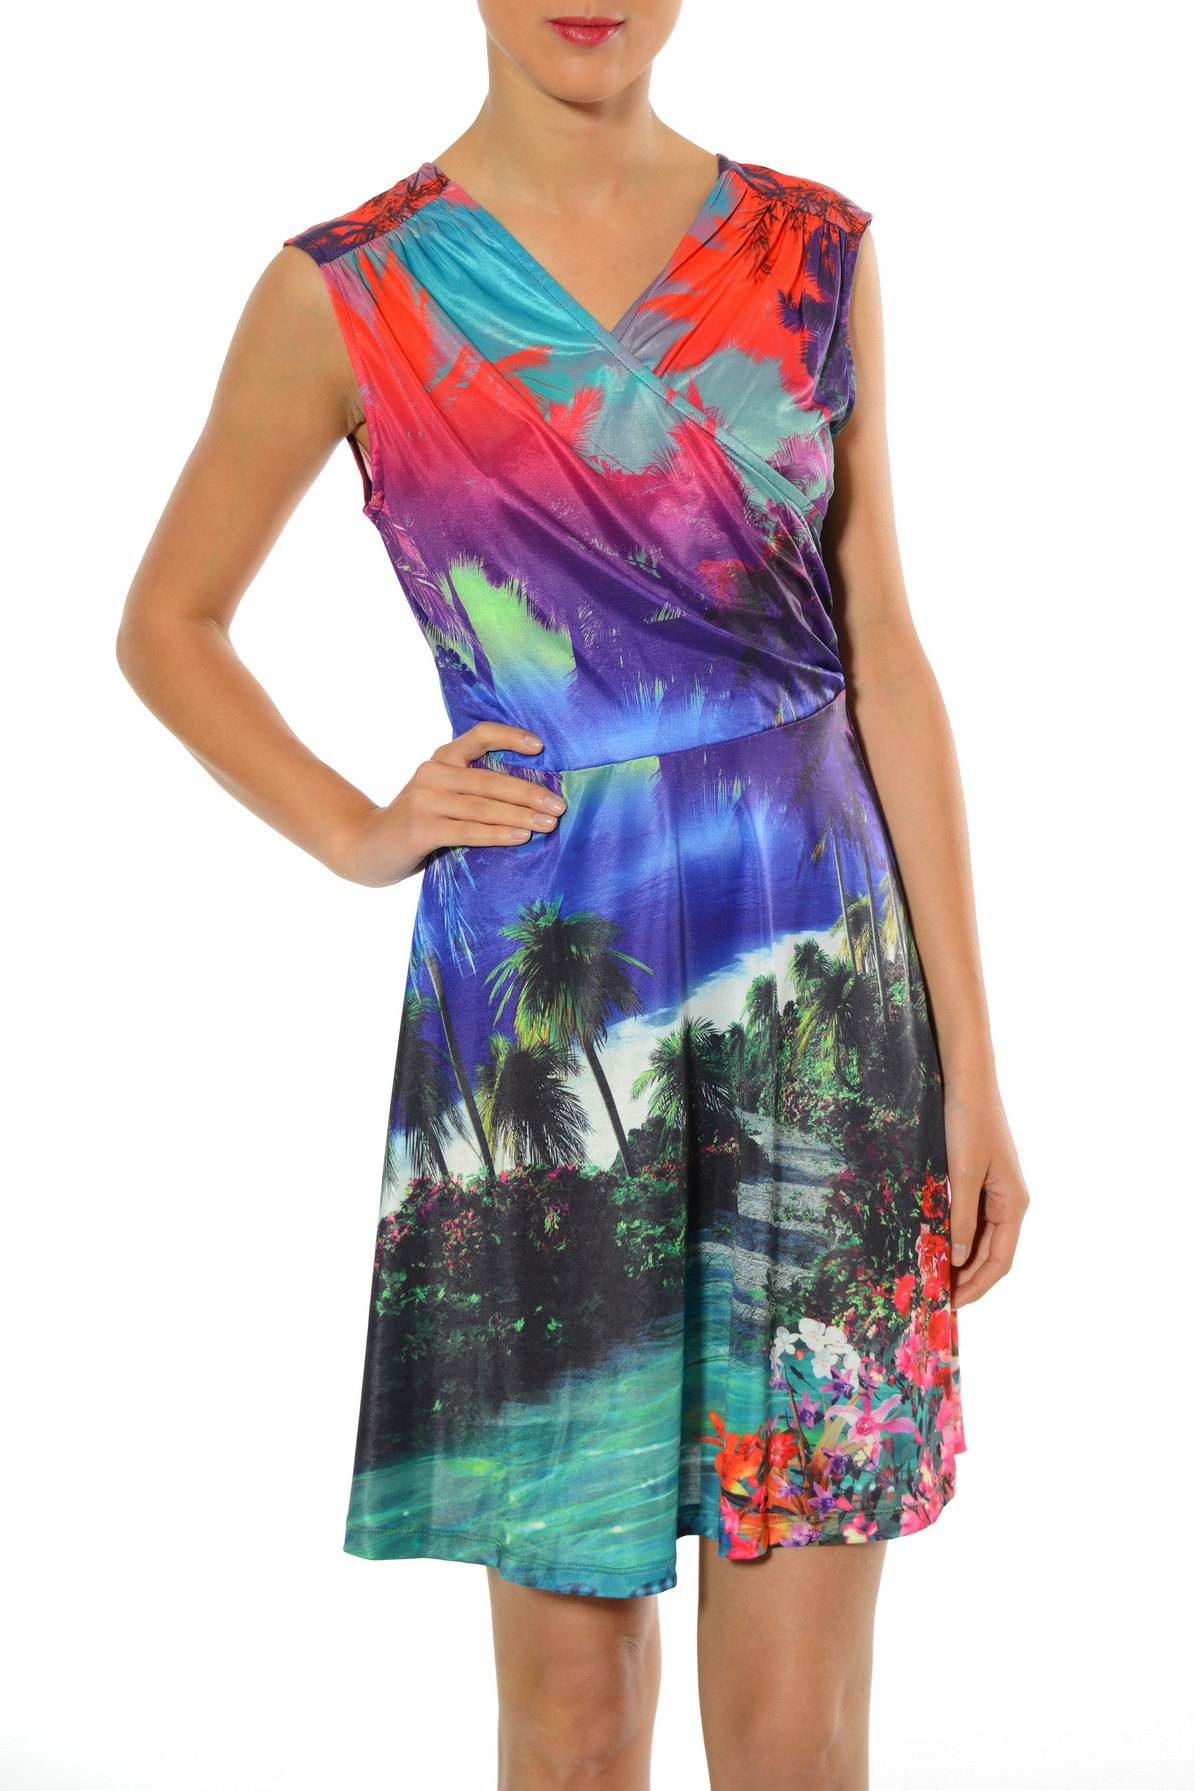 Smash! Spain: Island Breeze Print Dress SMASH_S1583110